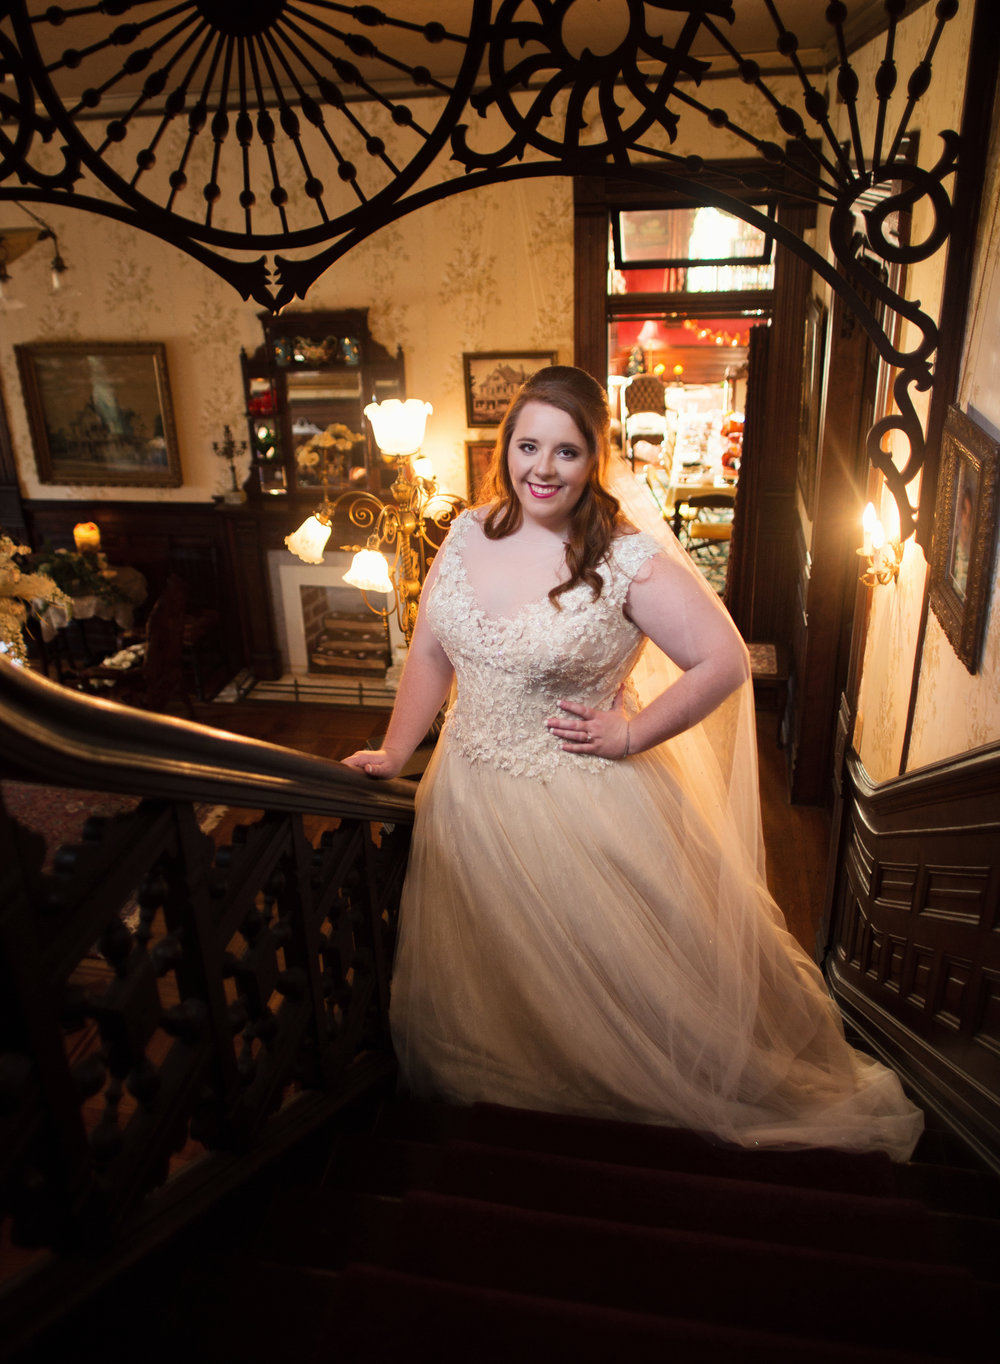 Bride Photos in Shreveport, Louisiana